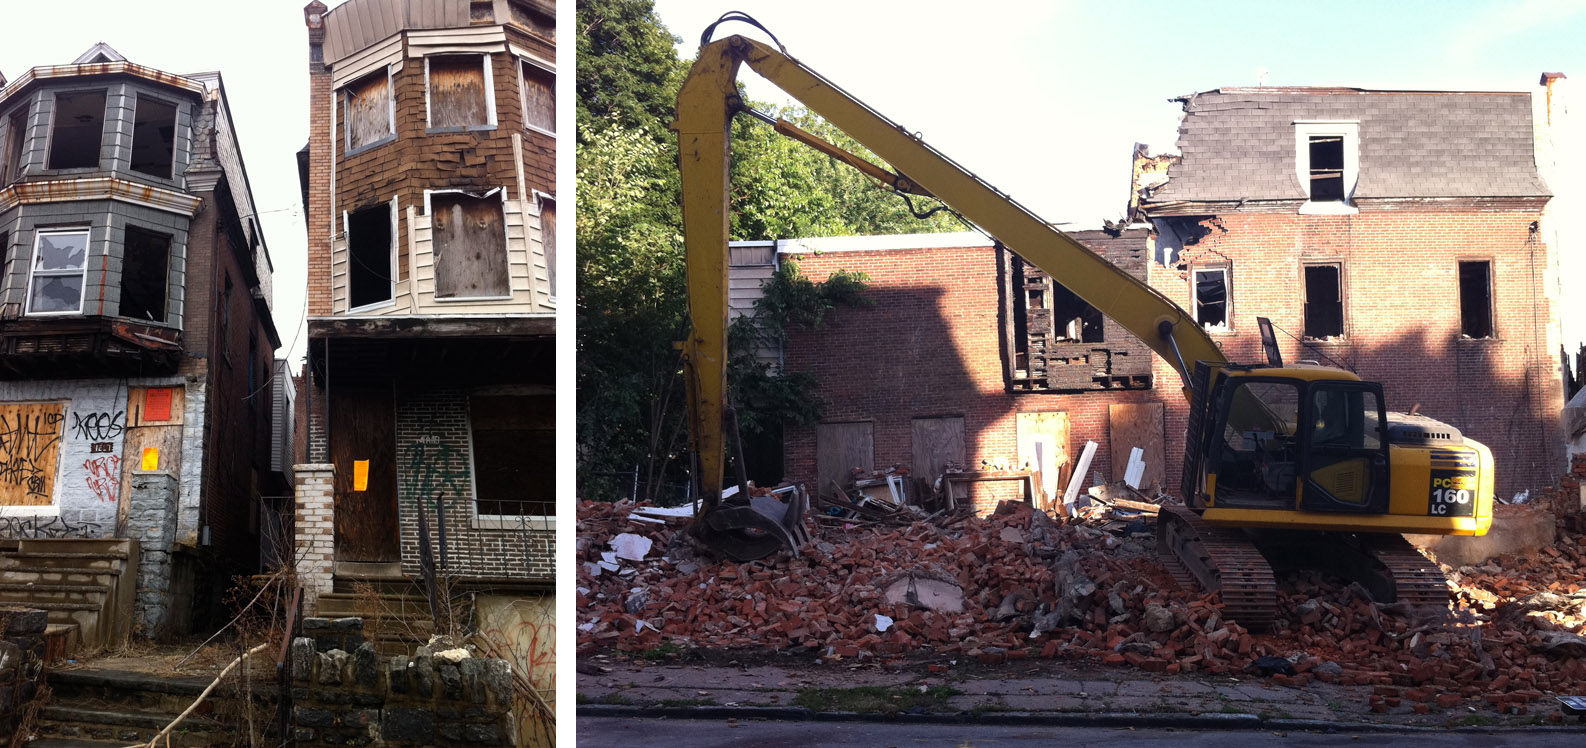 Vacant properties on West Rockland Street before and during demolition. One of the cleared lots was auctioned by PHA.  | courtesy of Aine Doley